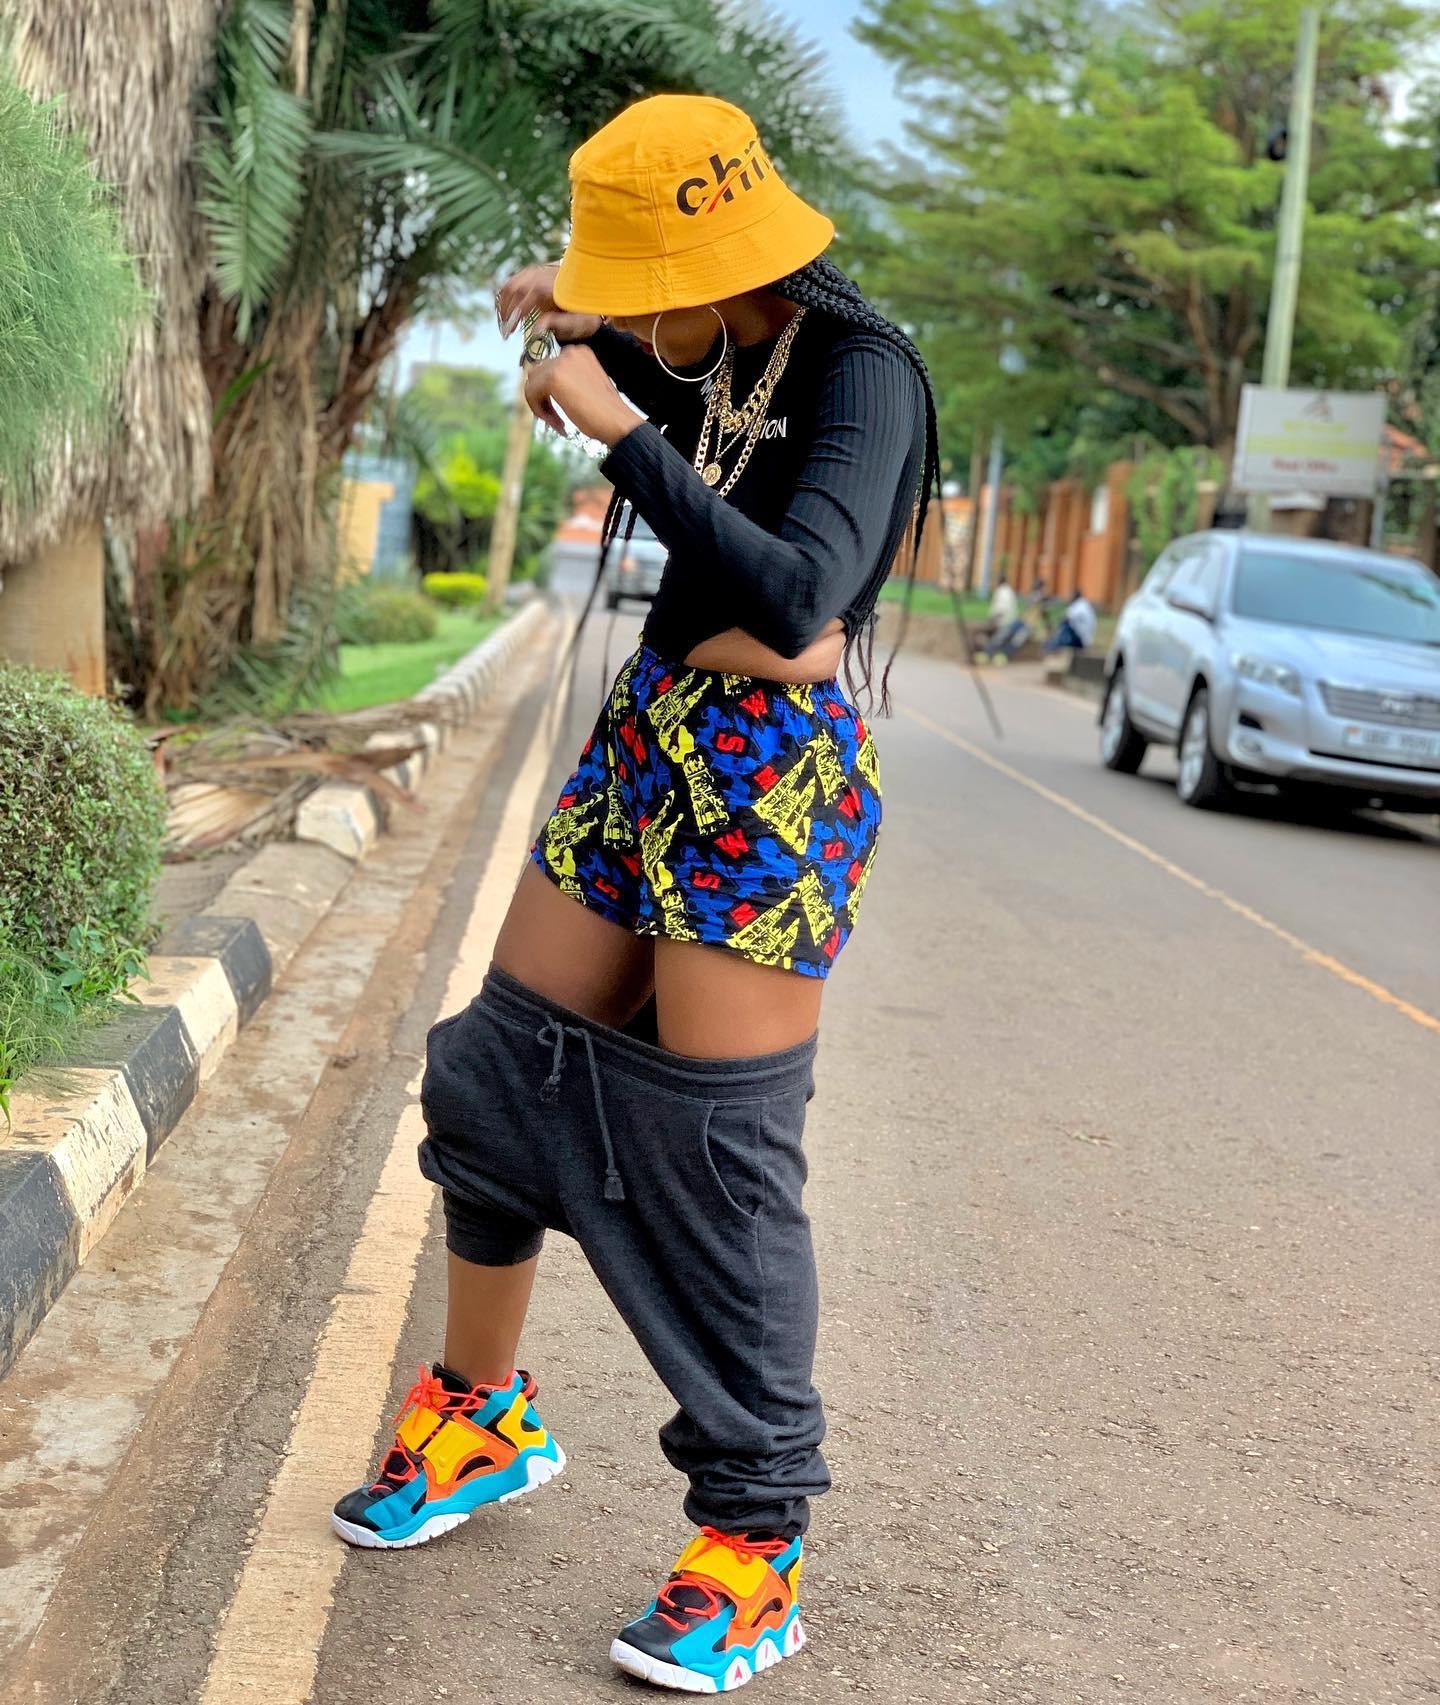 Spice Diana trolled by fans over Pants down Challenge – Showbizuganda